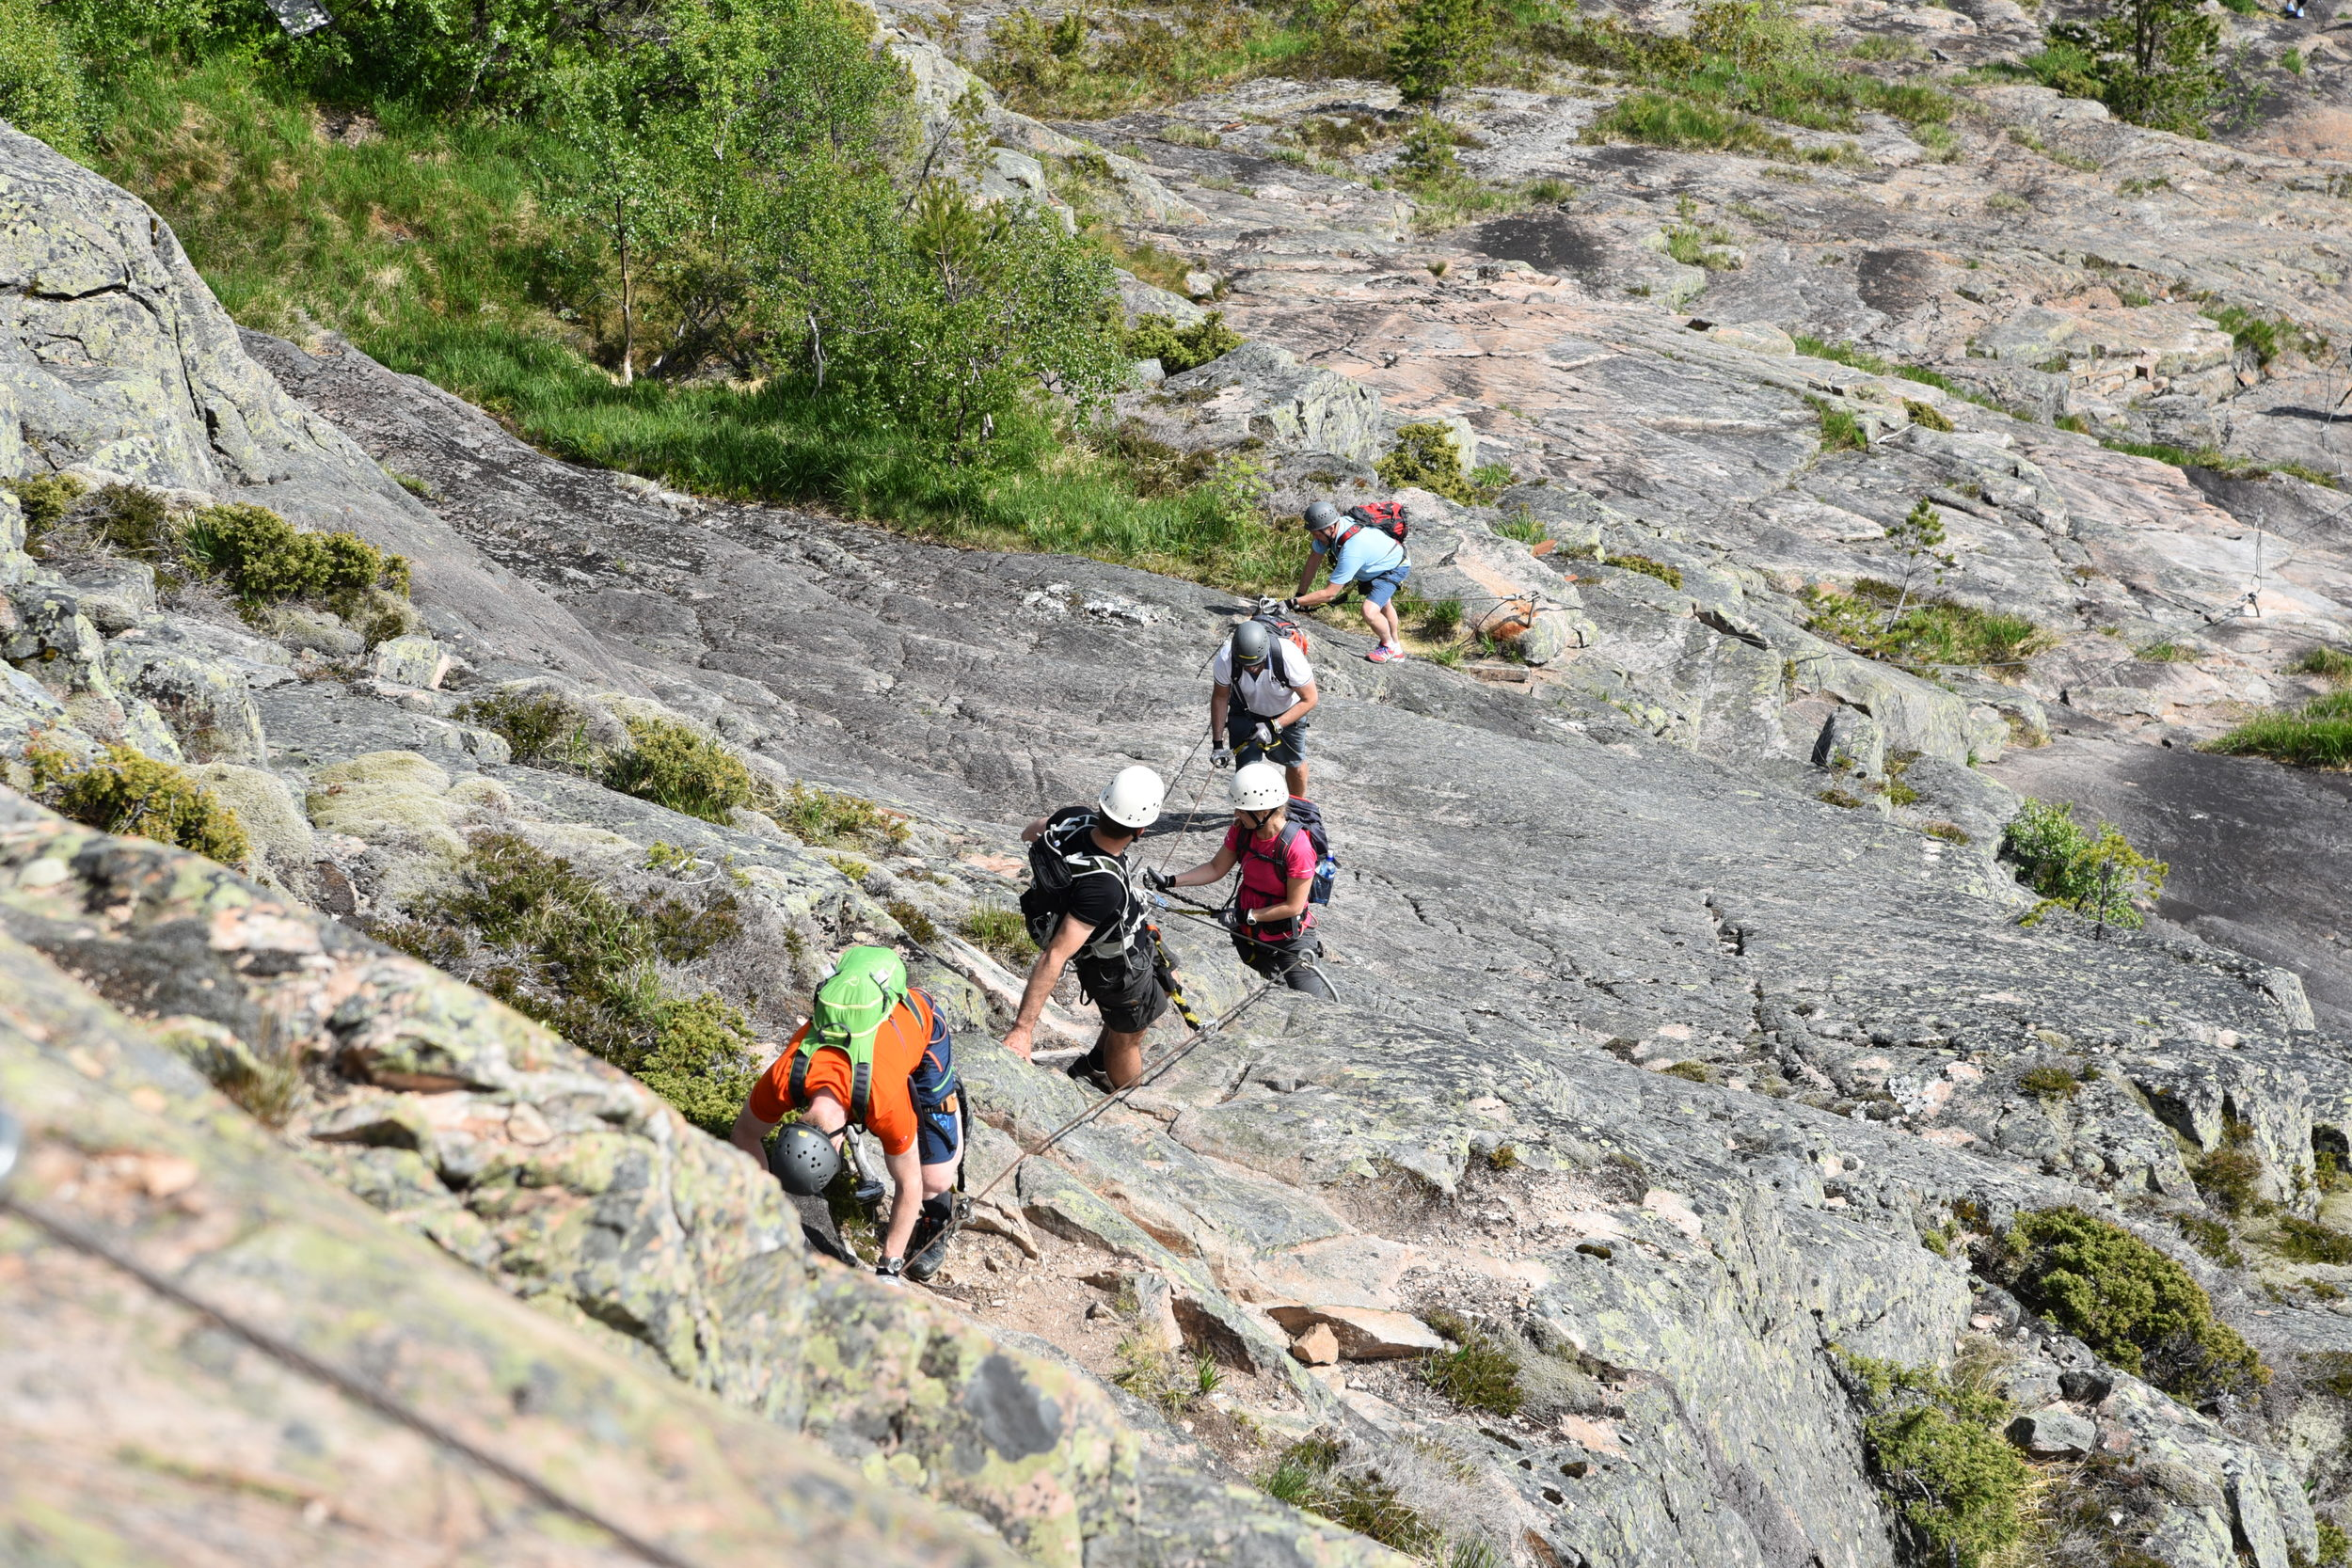 Via Ferrata is Italian and means iron path.